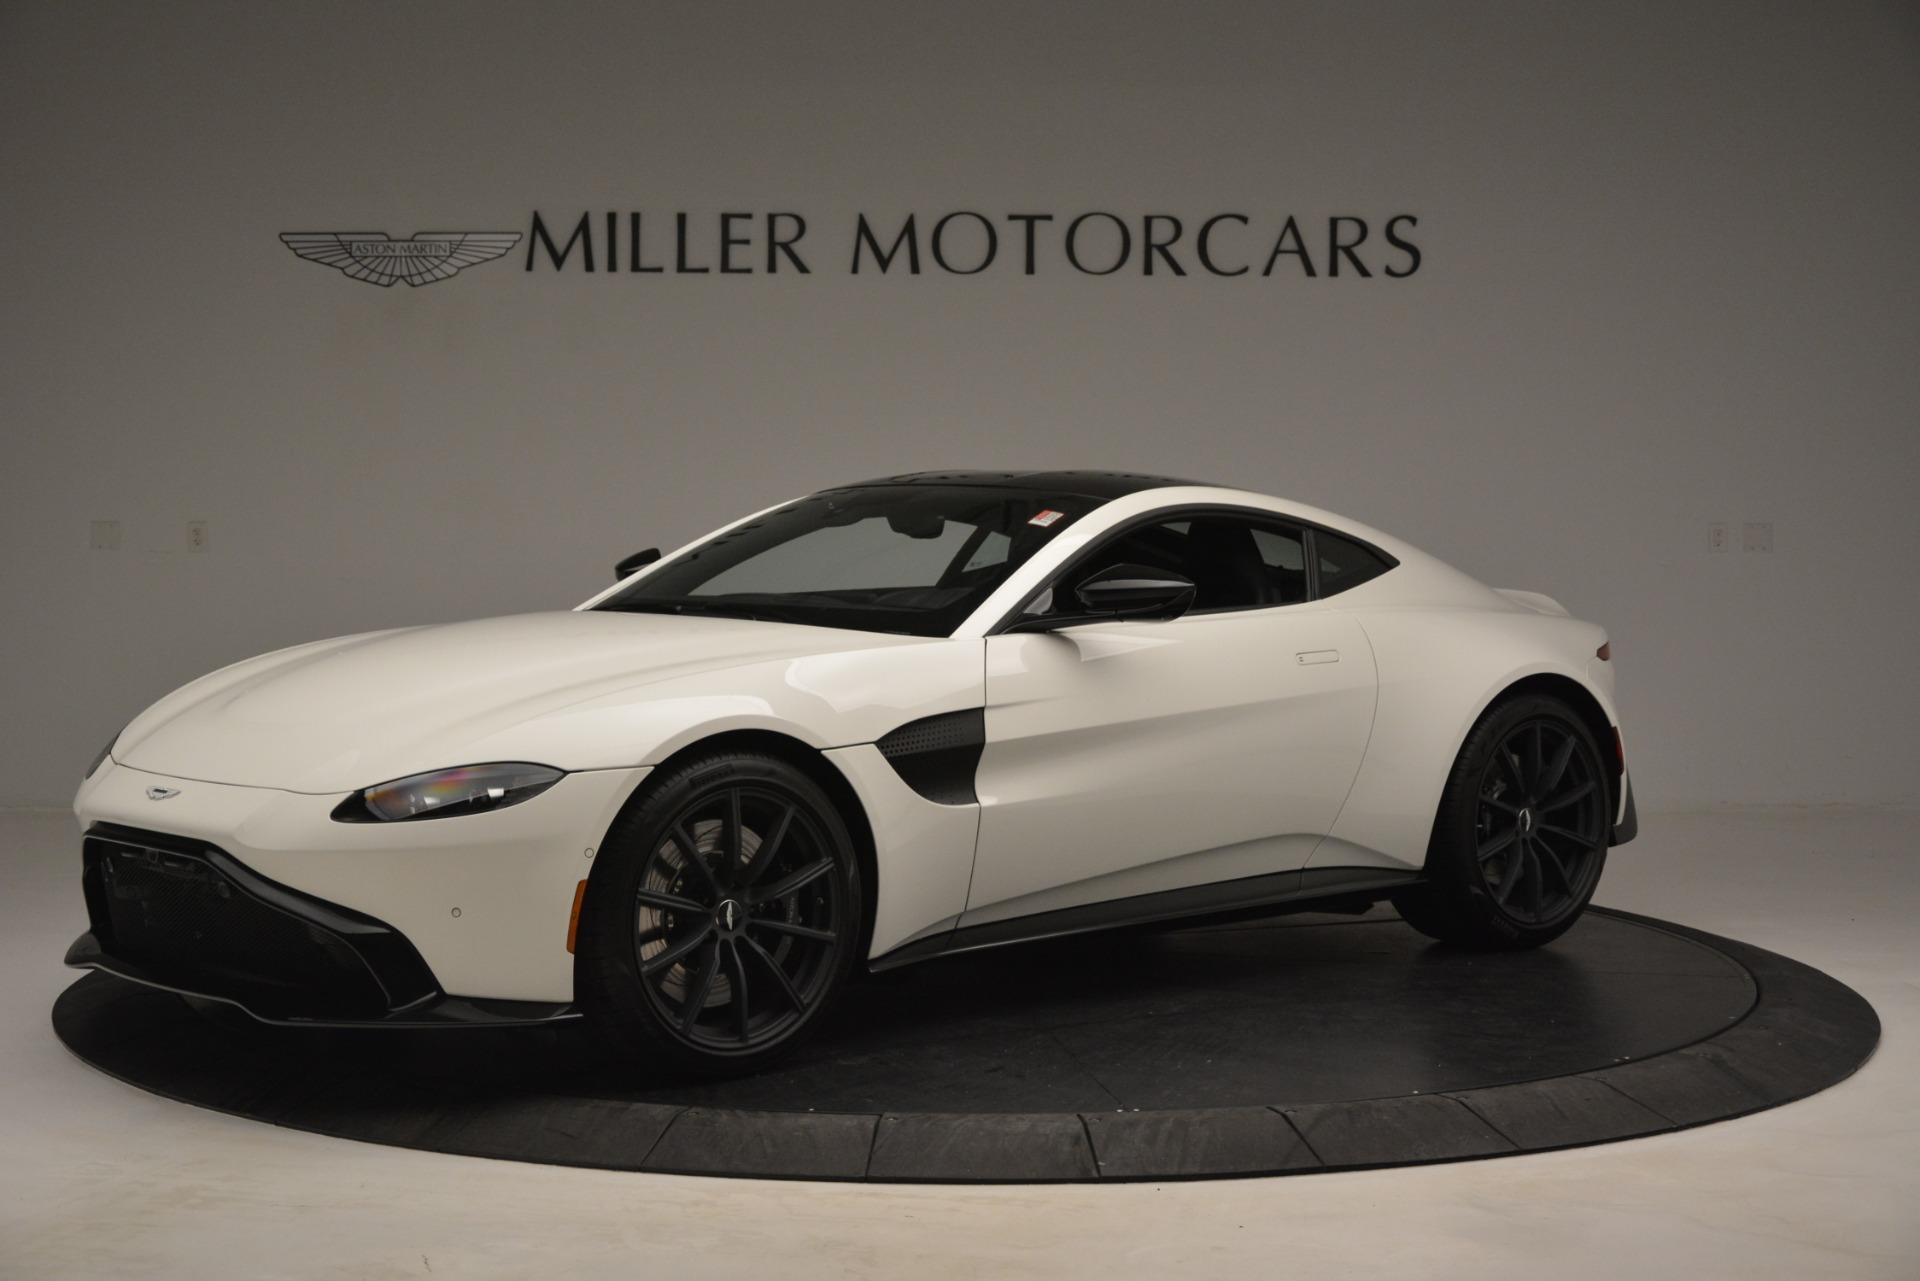 New 2019 Aston Martin Vantage V8 For Sale In Westport, CT 3053_main